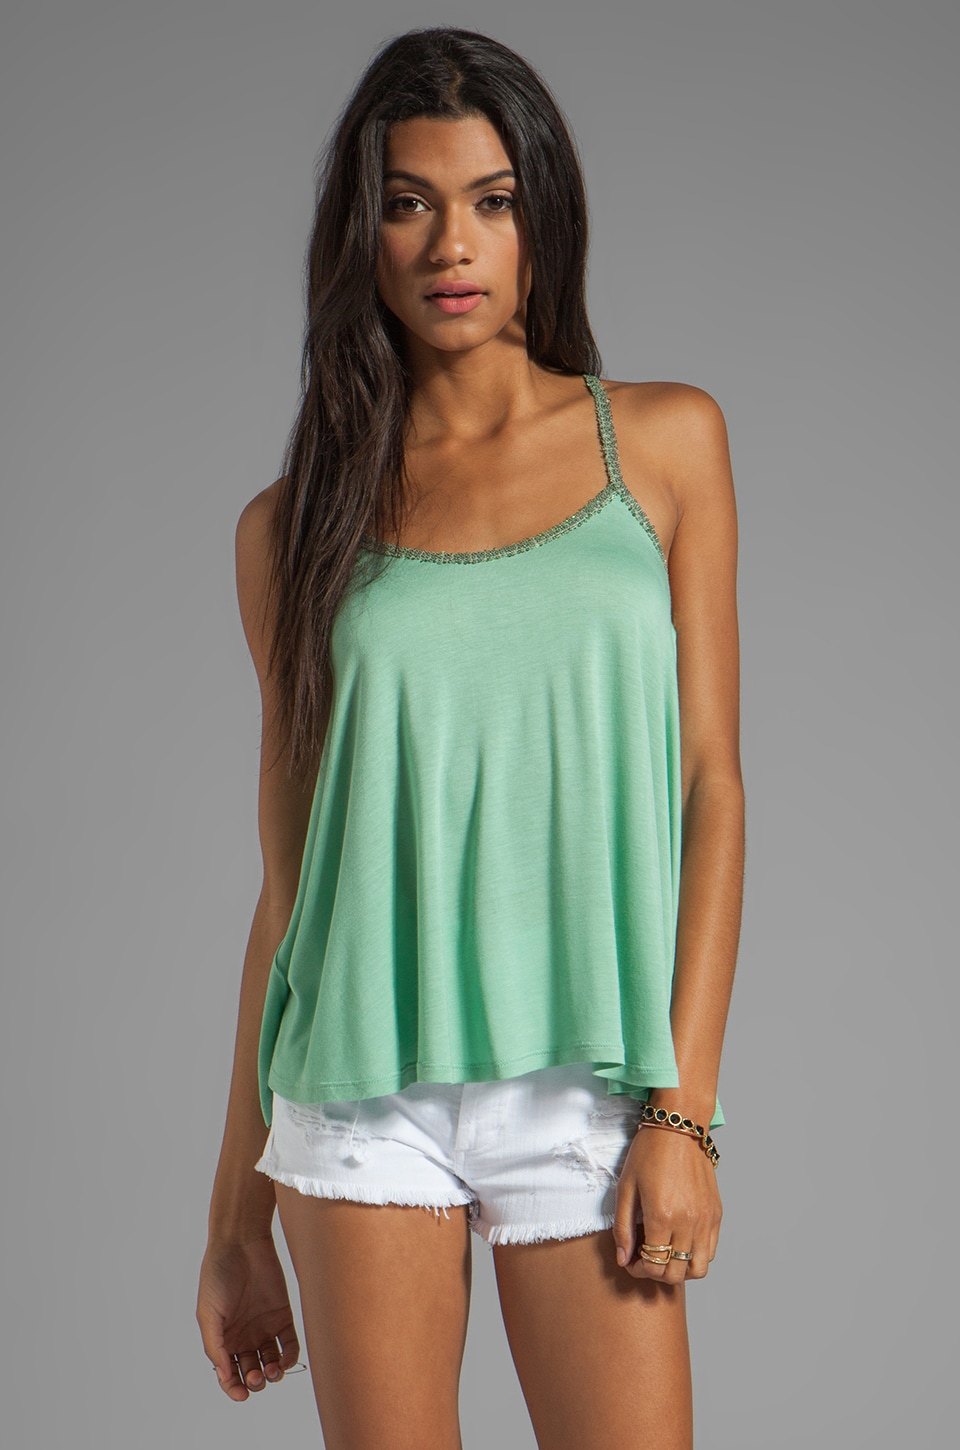 BB Dakota Bendita Sequin Strap Tank in Mint Julep